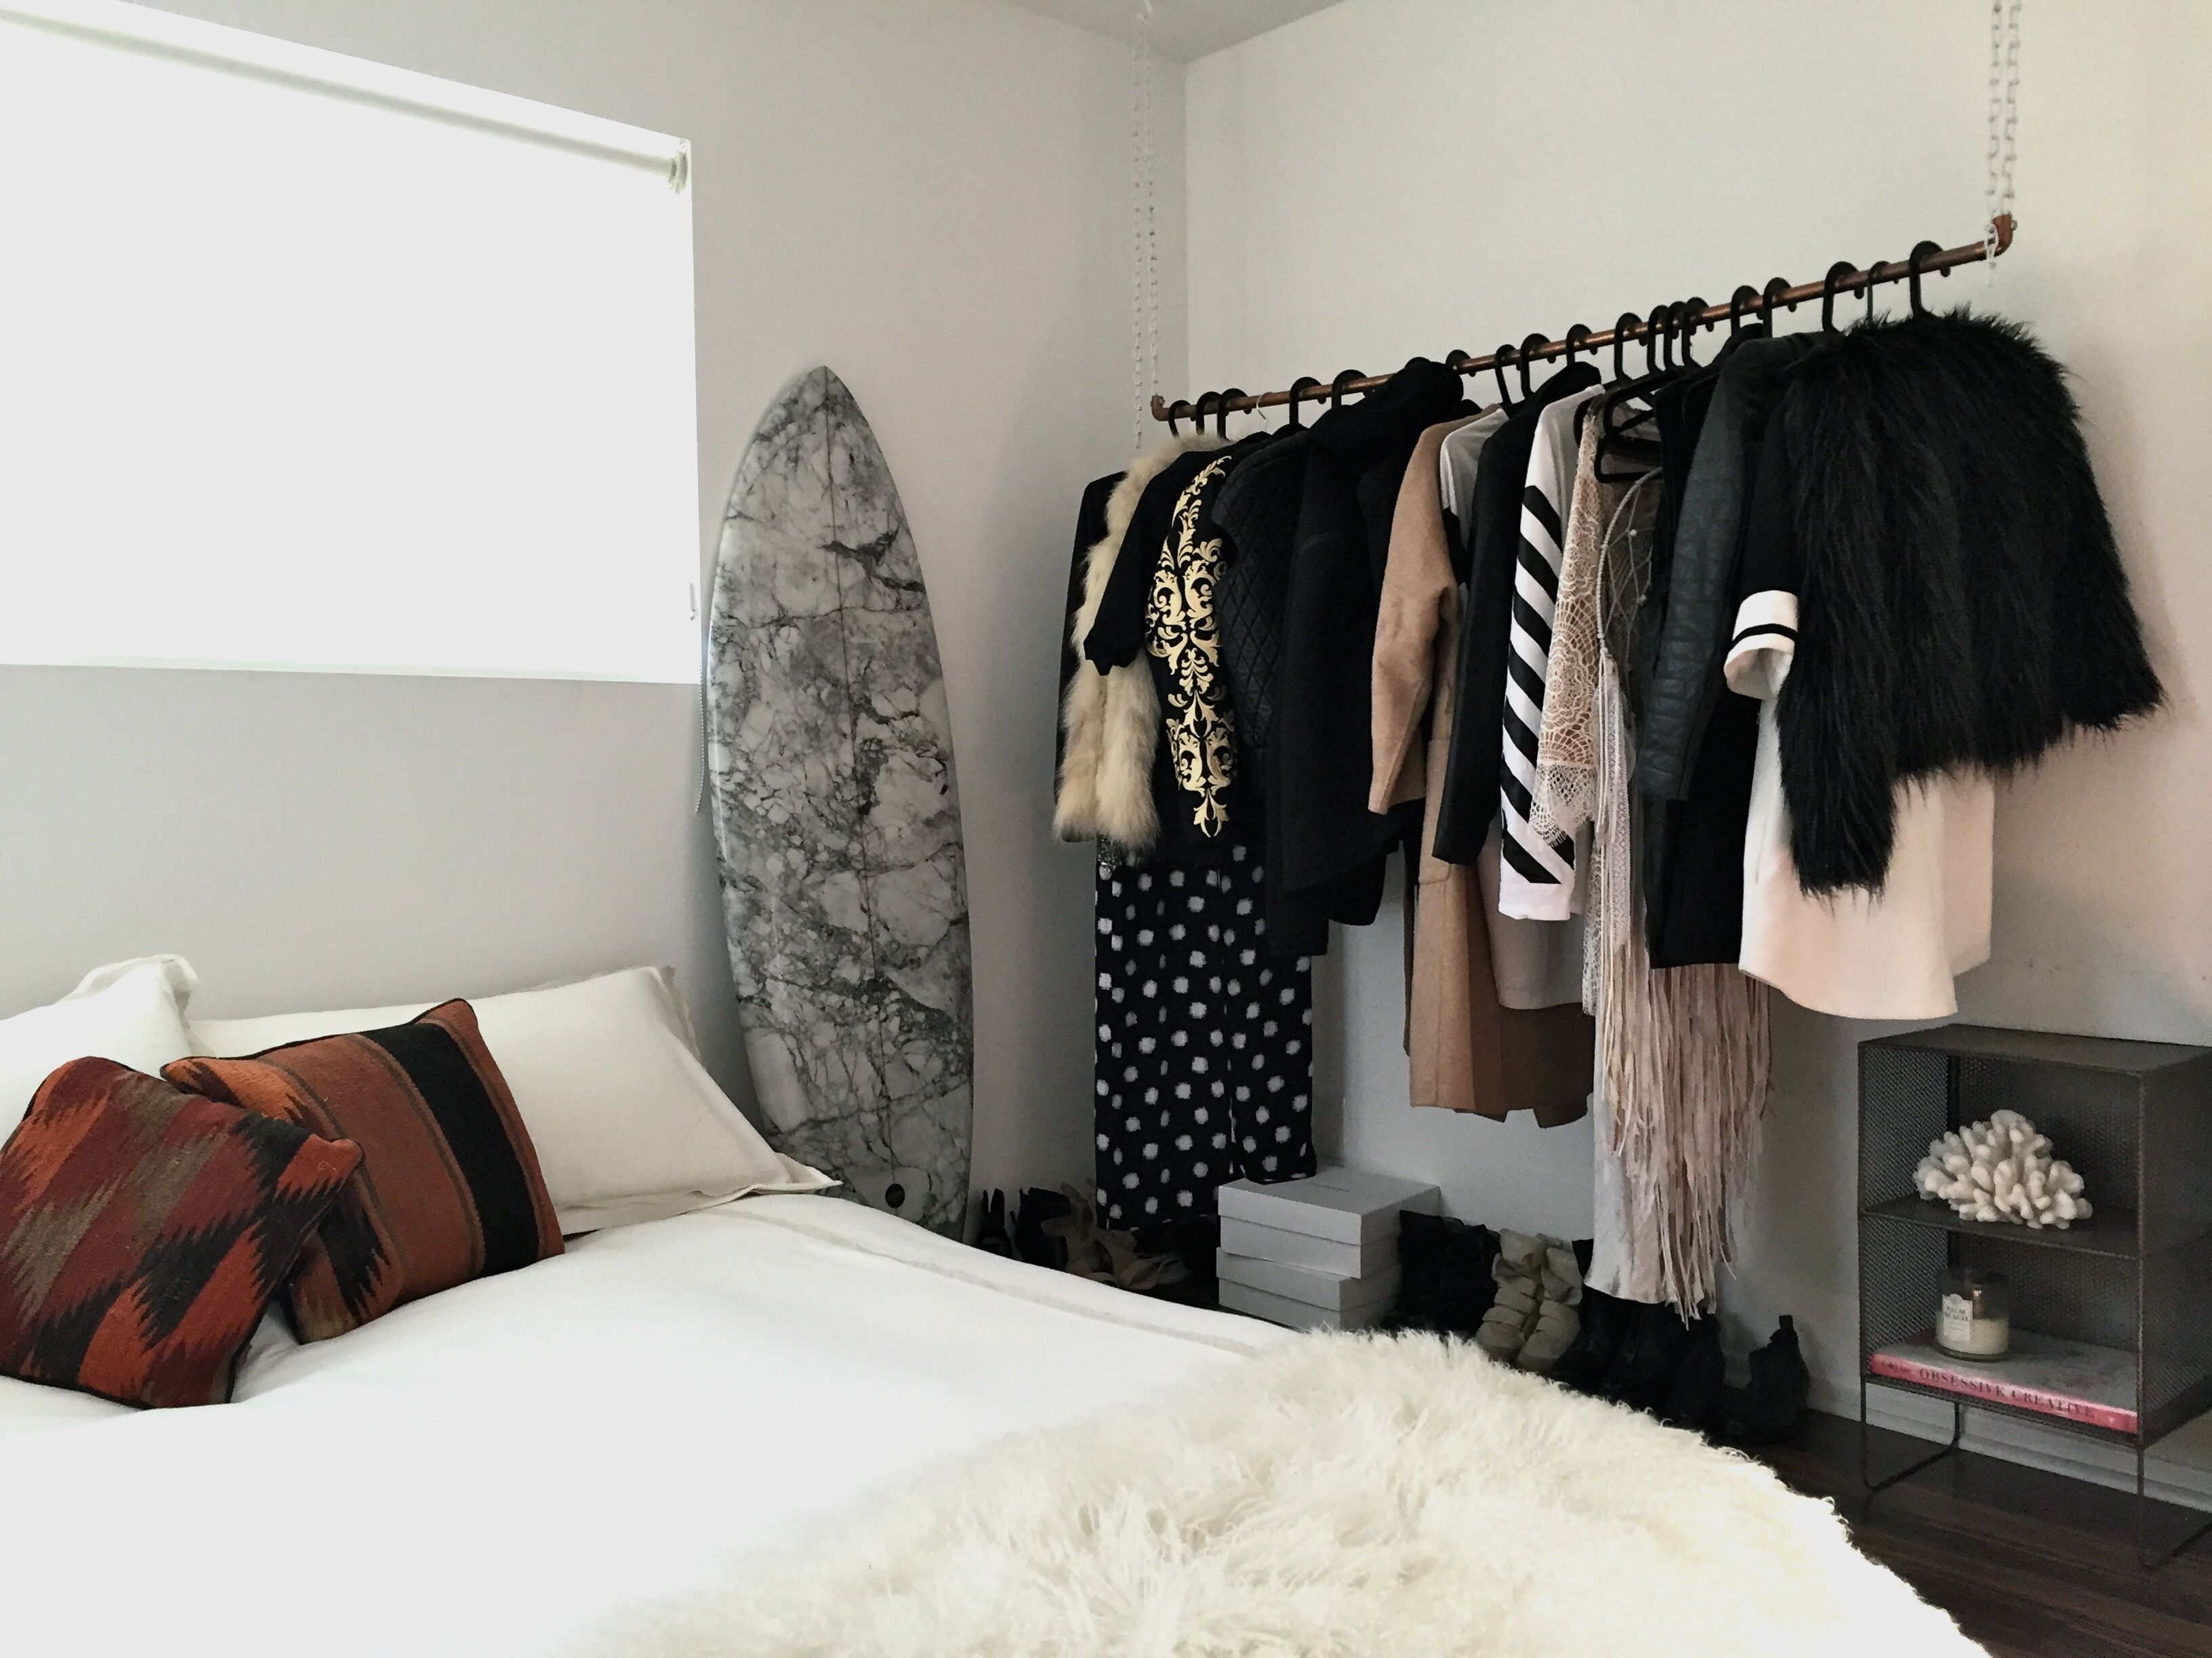 bedroom styling, bedroom decor, interior design, marble surfboard